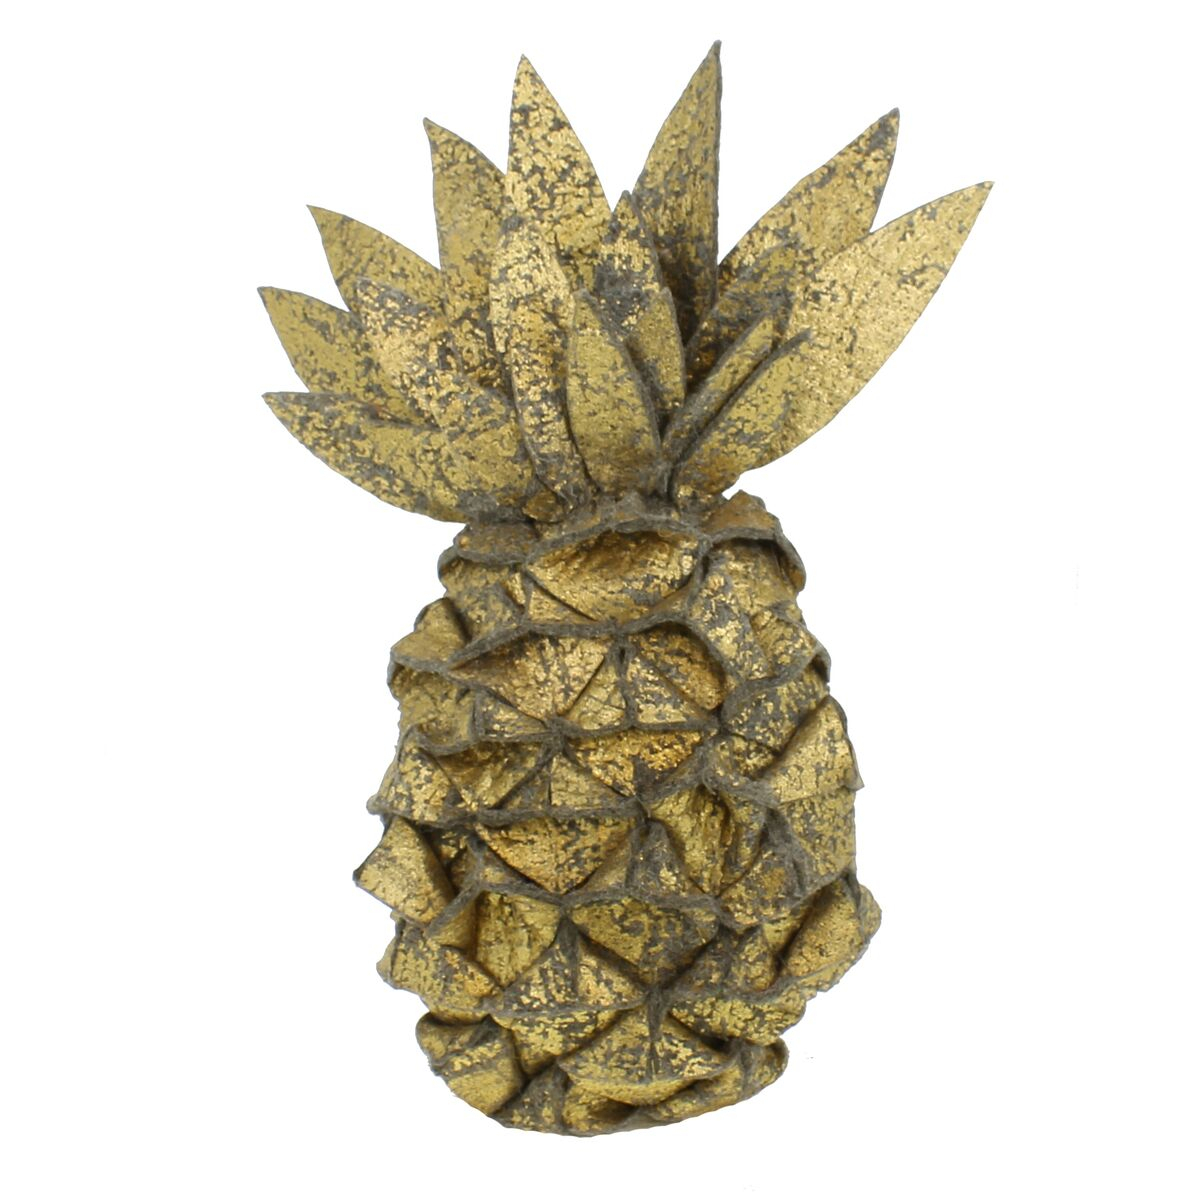 Fiona Walker Felt Pineapple Wall Decor Gold Intended For Pineapple Wall Decor (View 12 of 30)